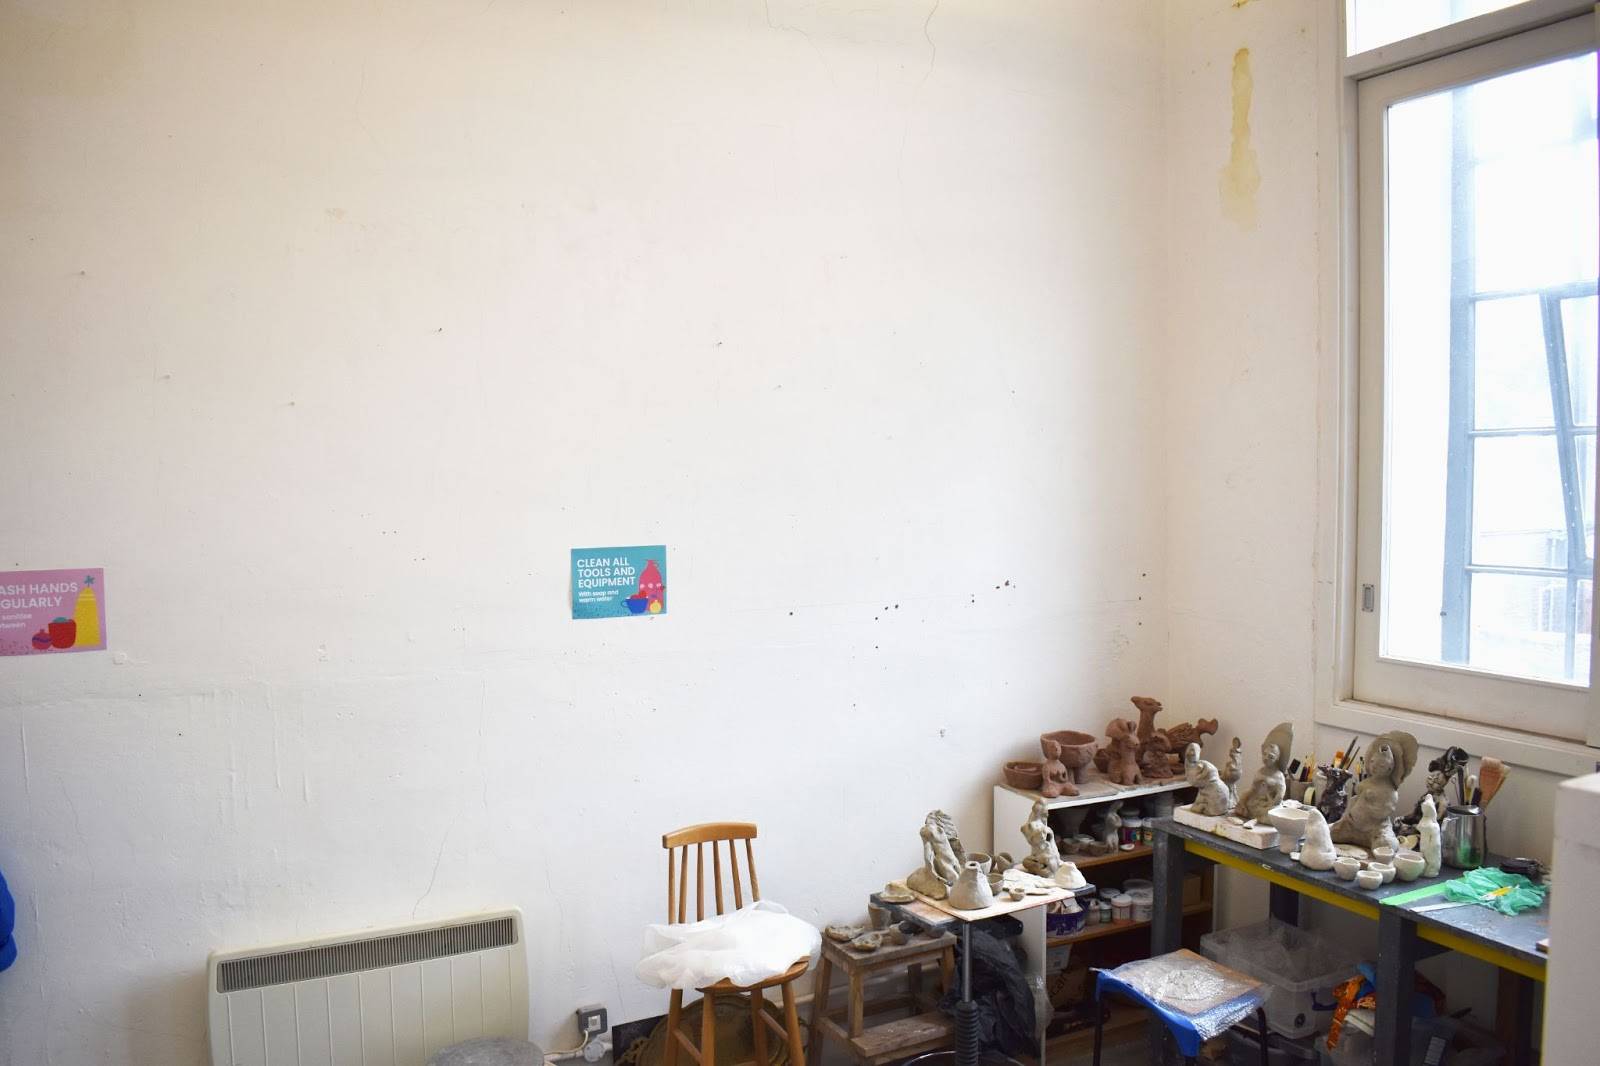 Open Call: Mural for Dundee Ceramics Workshop Image #2